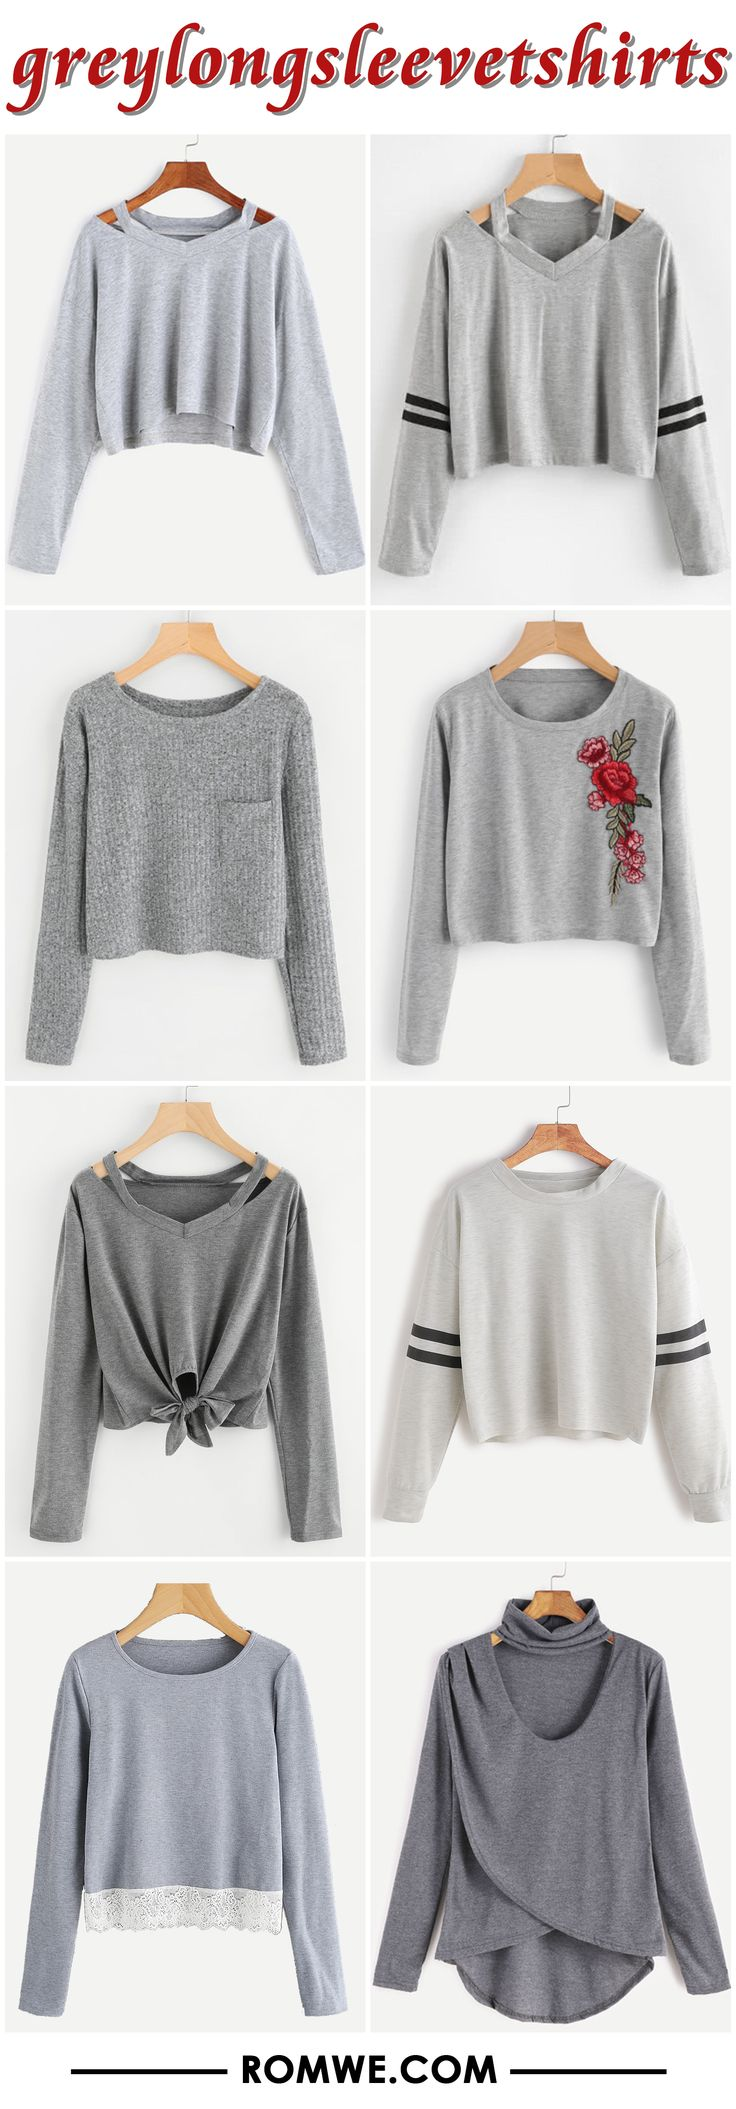 grey long sleeve t shirts from romwe.com